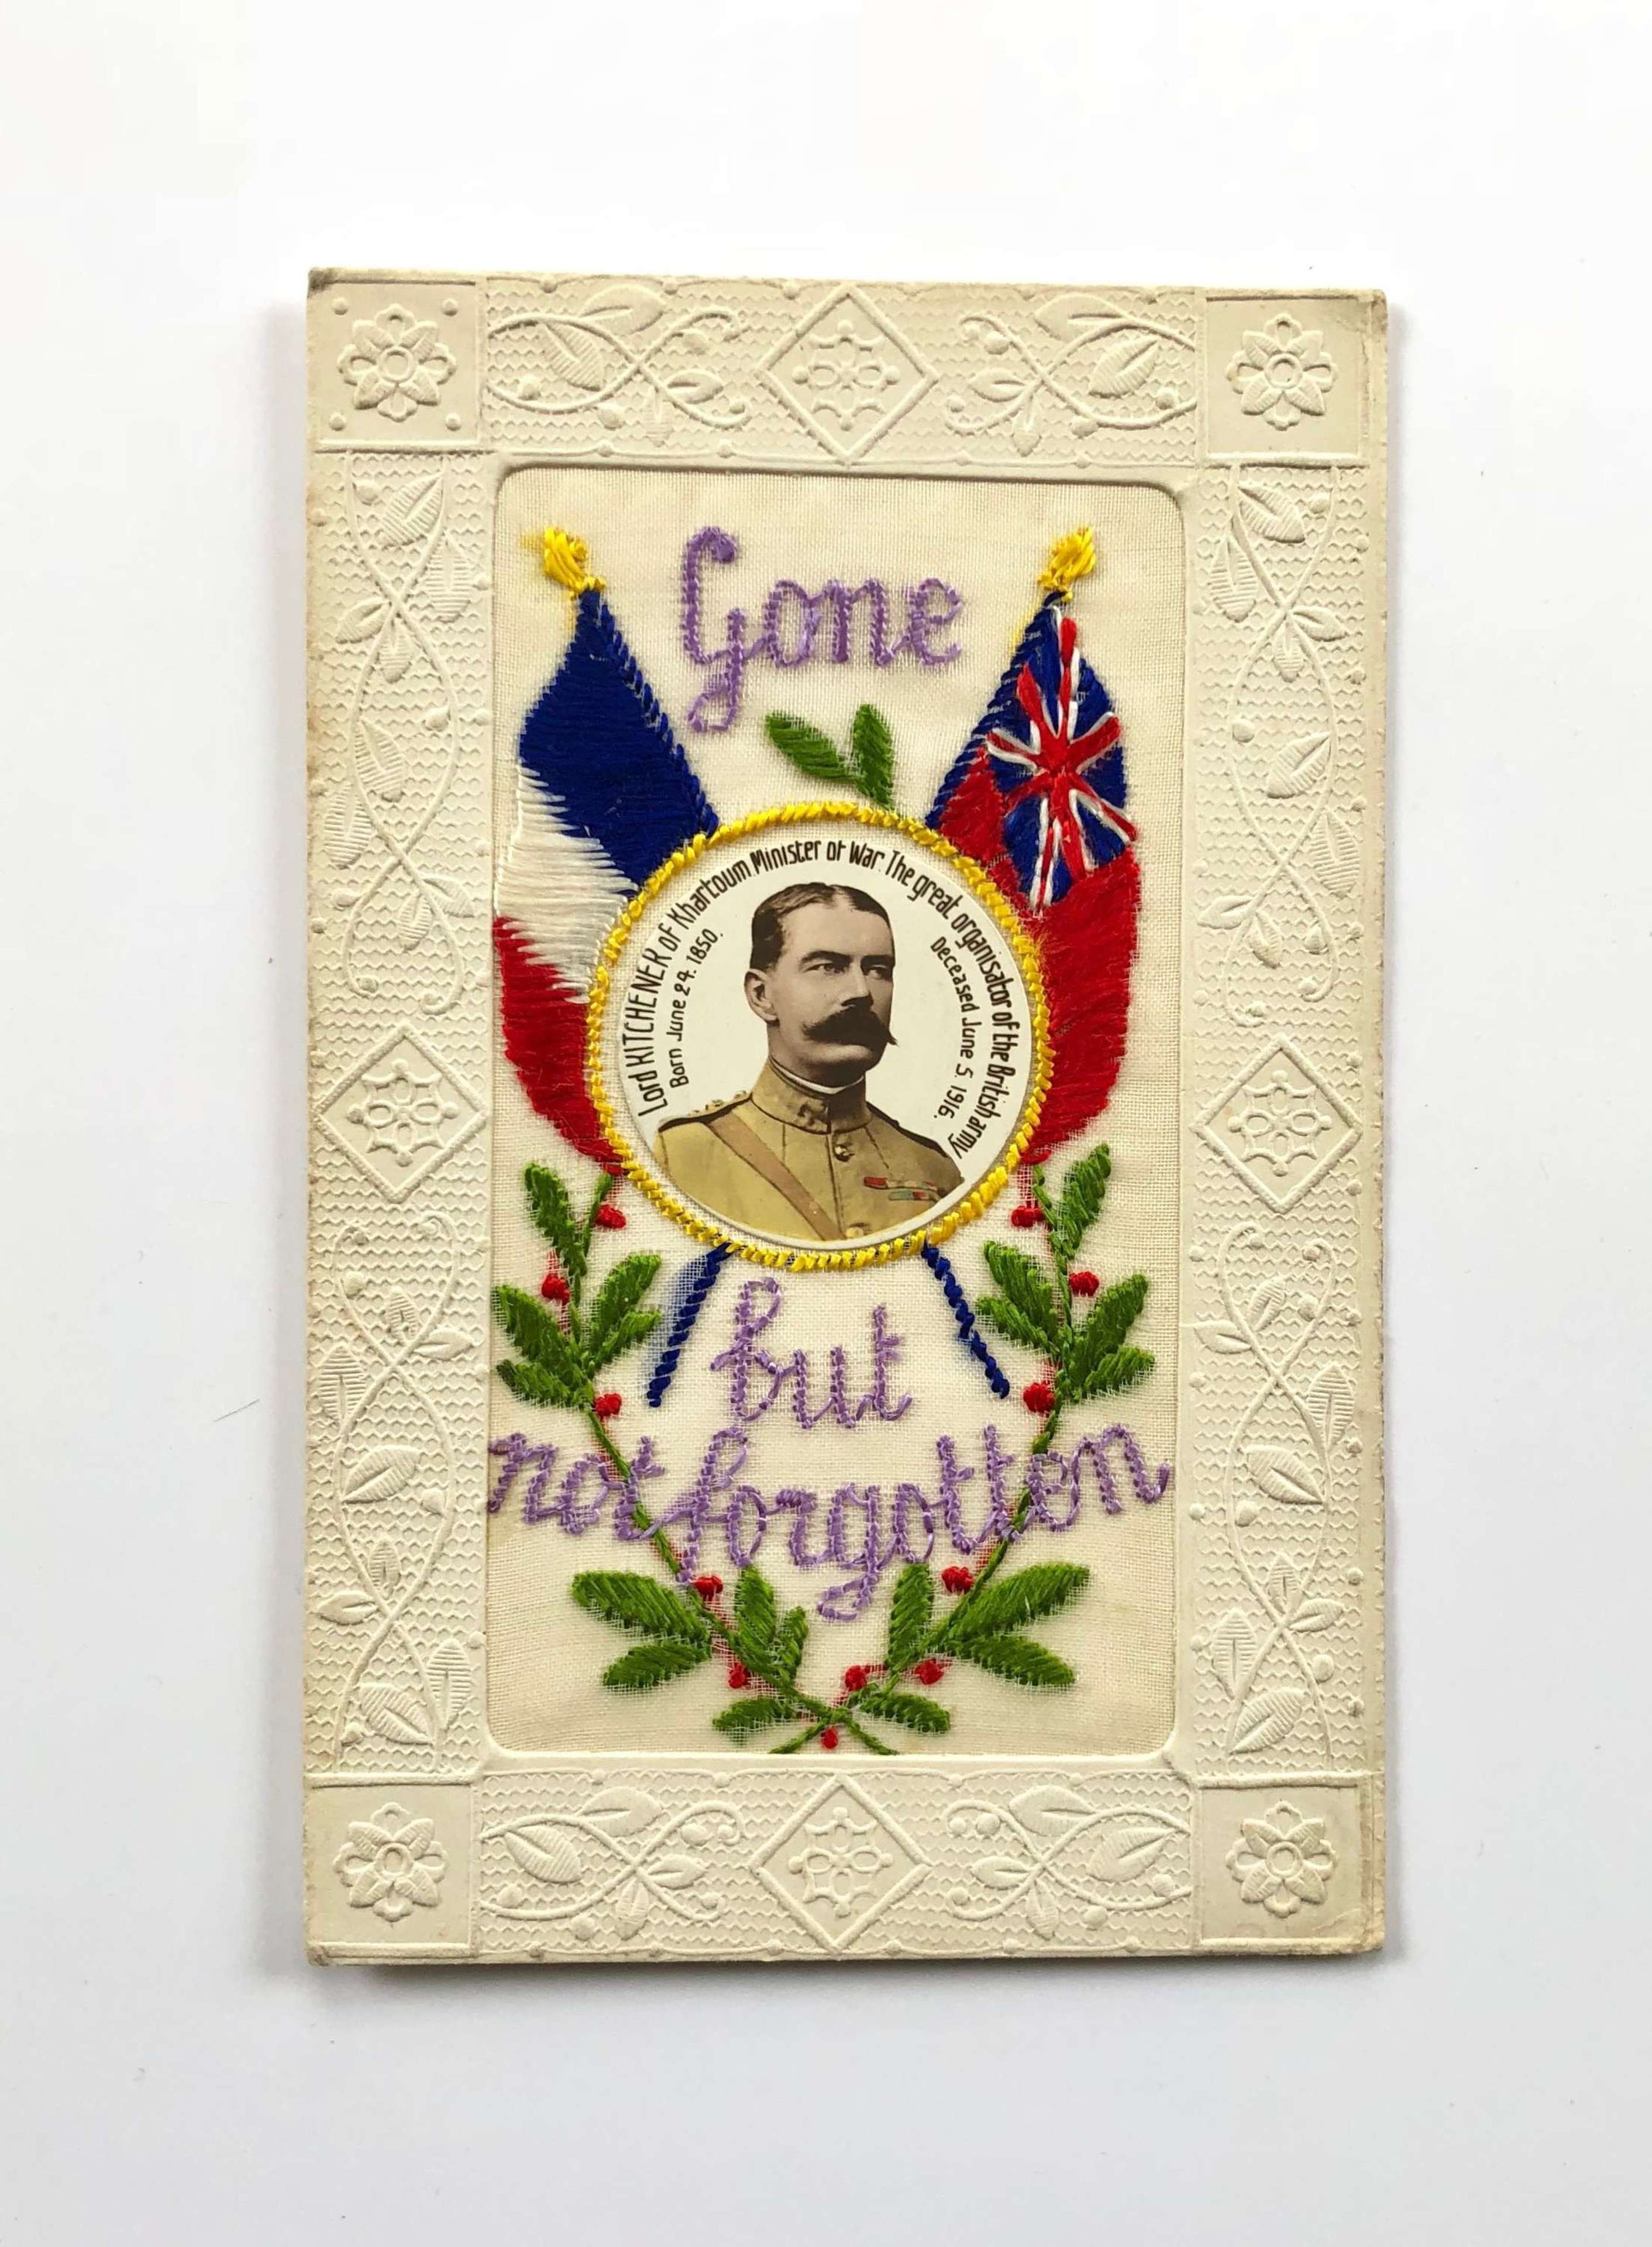 WW1 Lord Kitchener Red Ensign silk Memorial Military Postcard